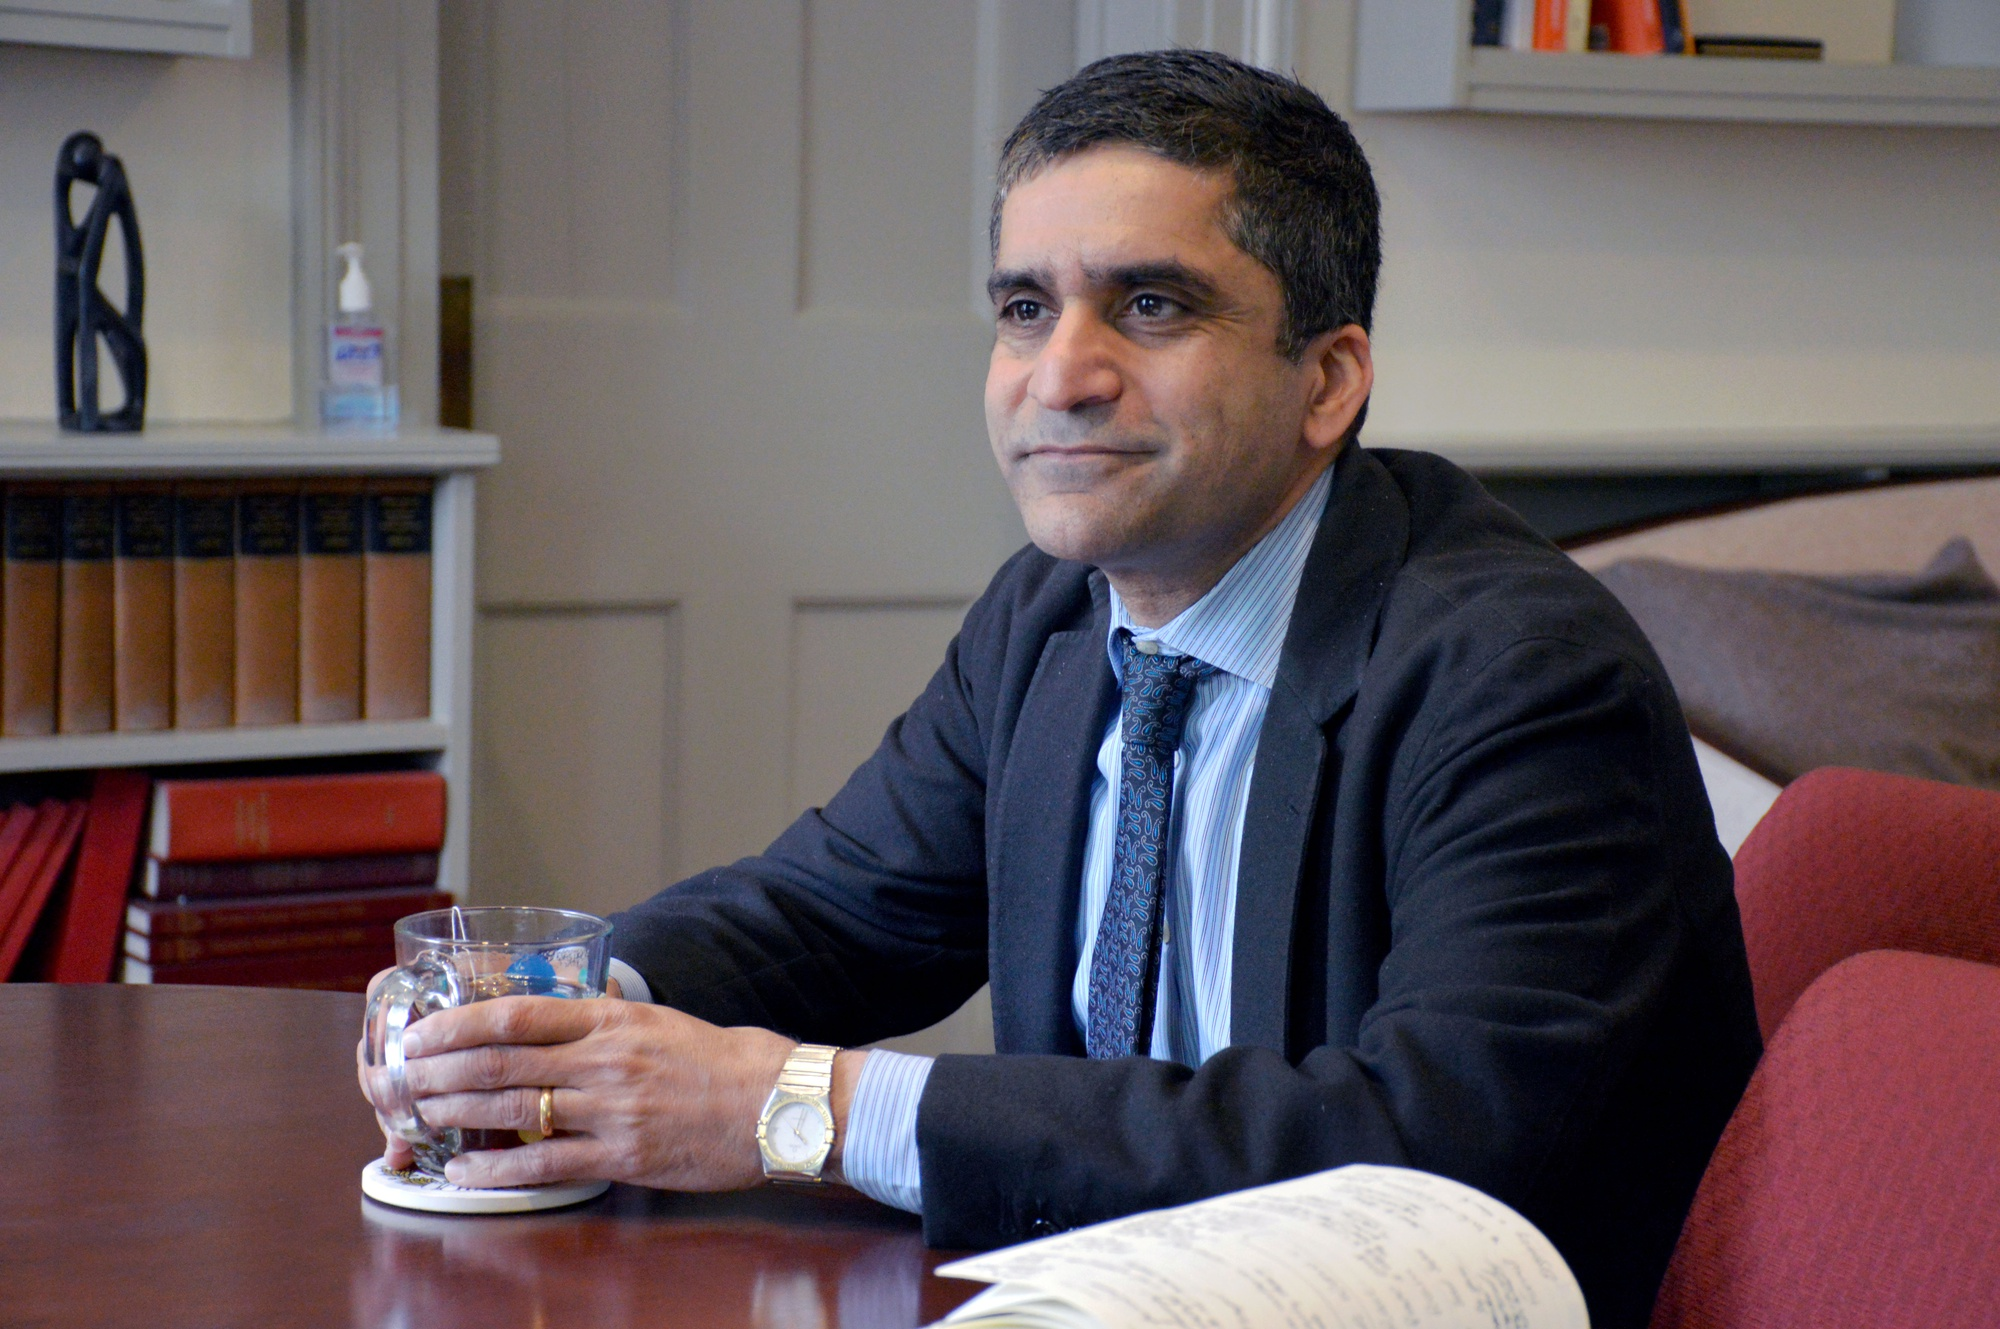 Dean of the College Rakesh Khurana in his office Tuesday